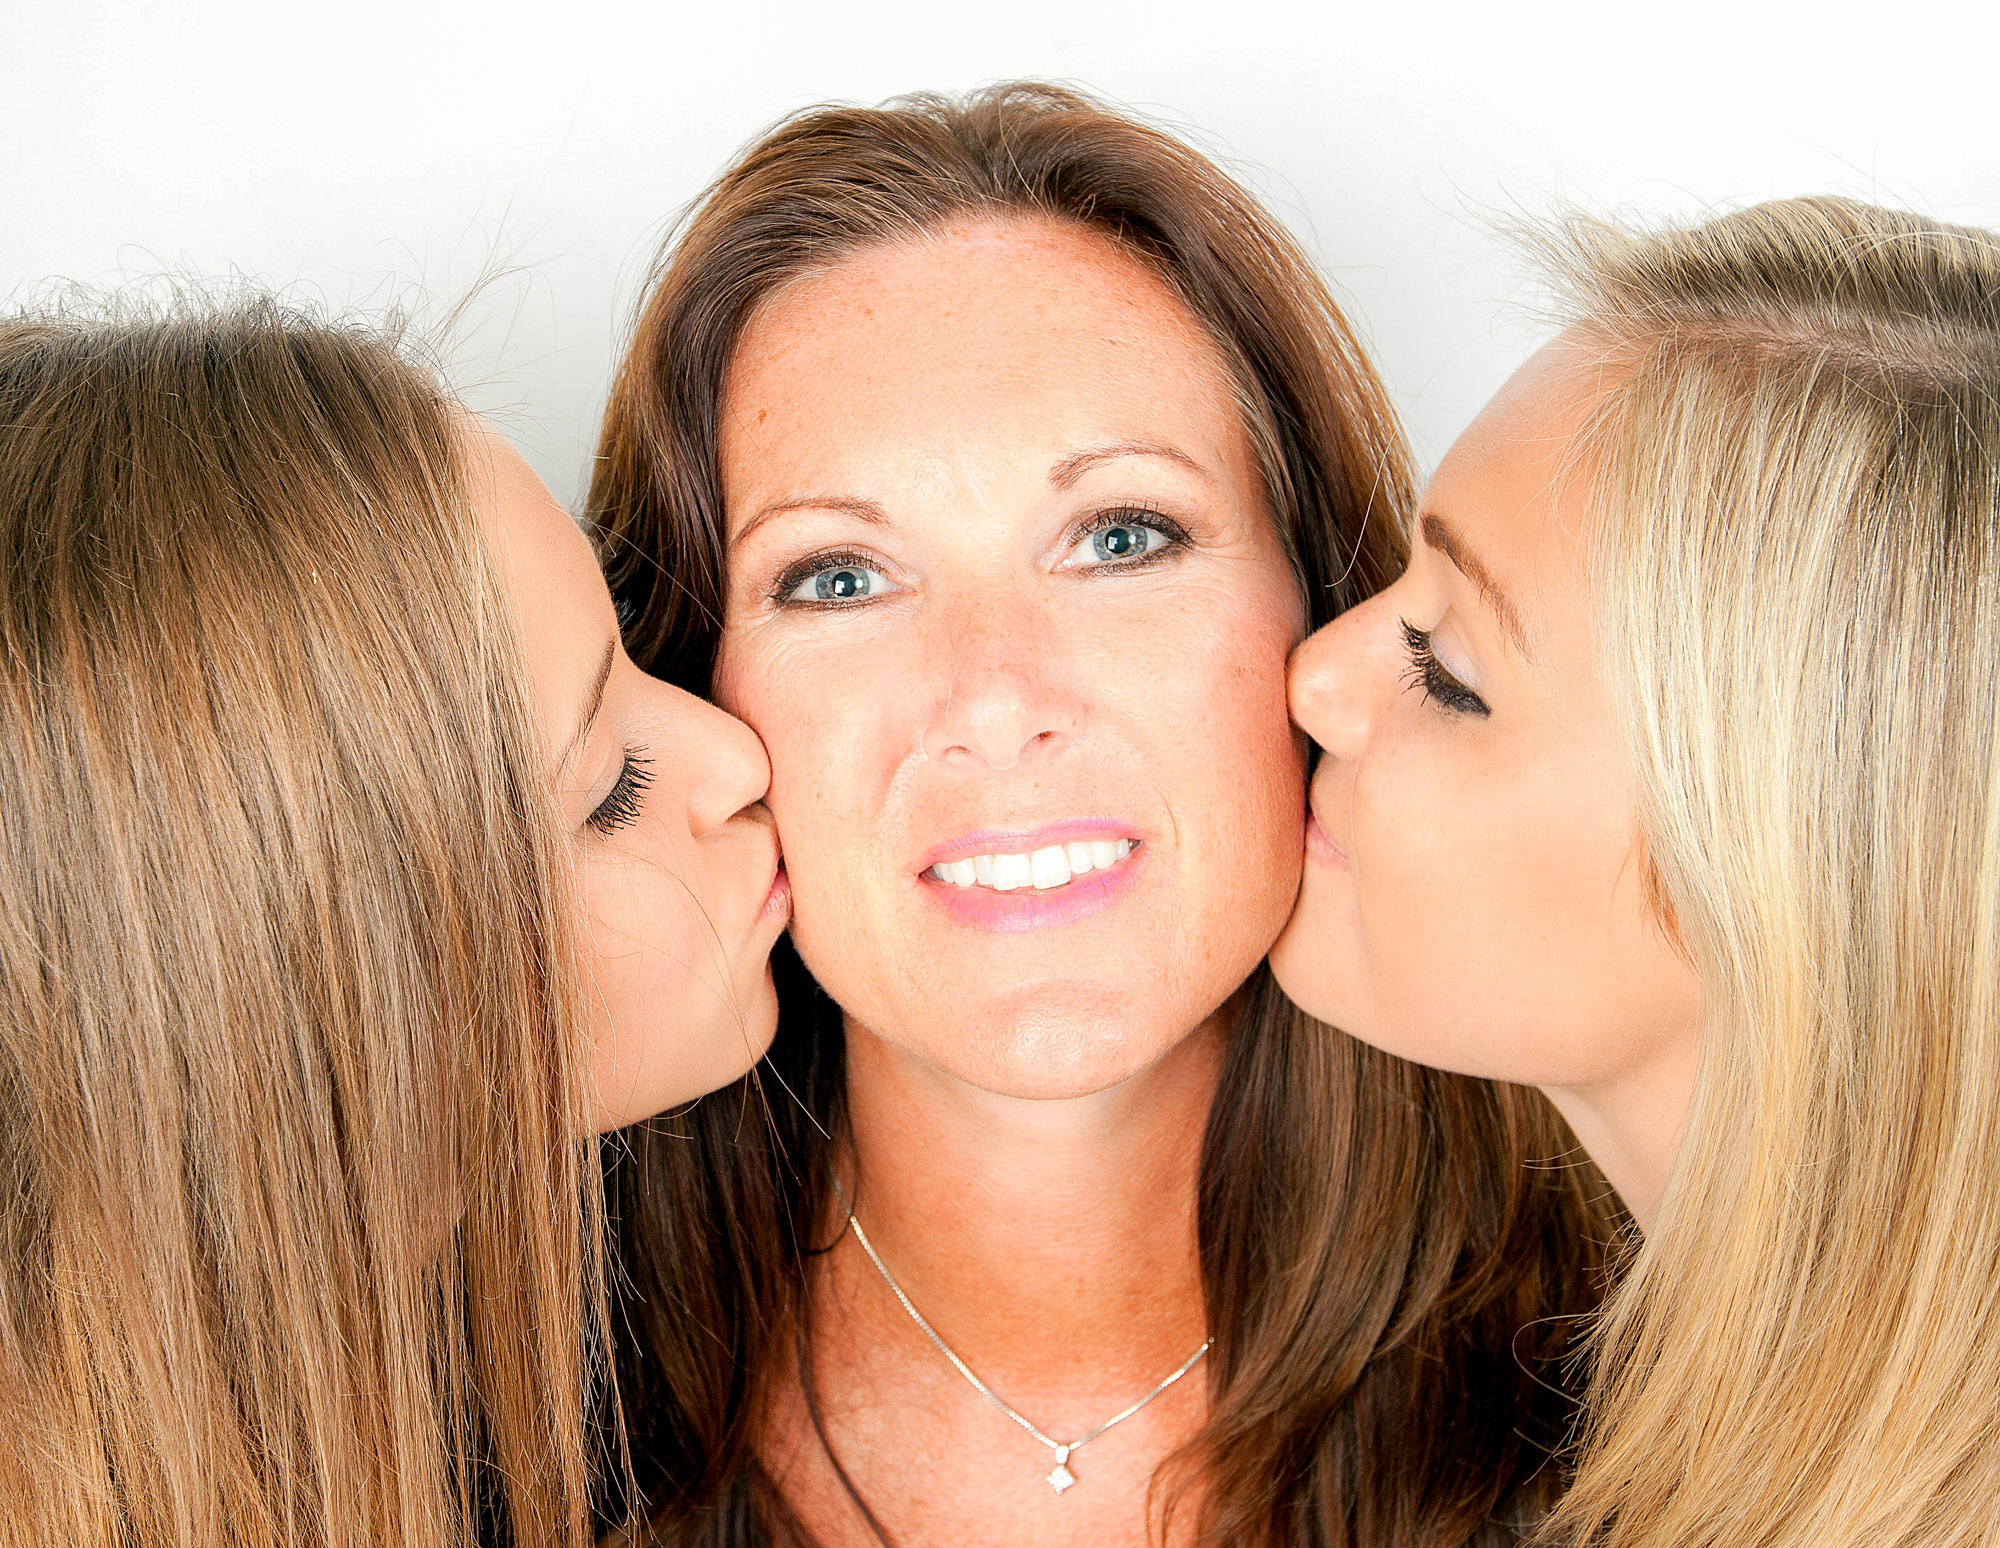 Daughters kissing mum on the cheeks